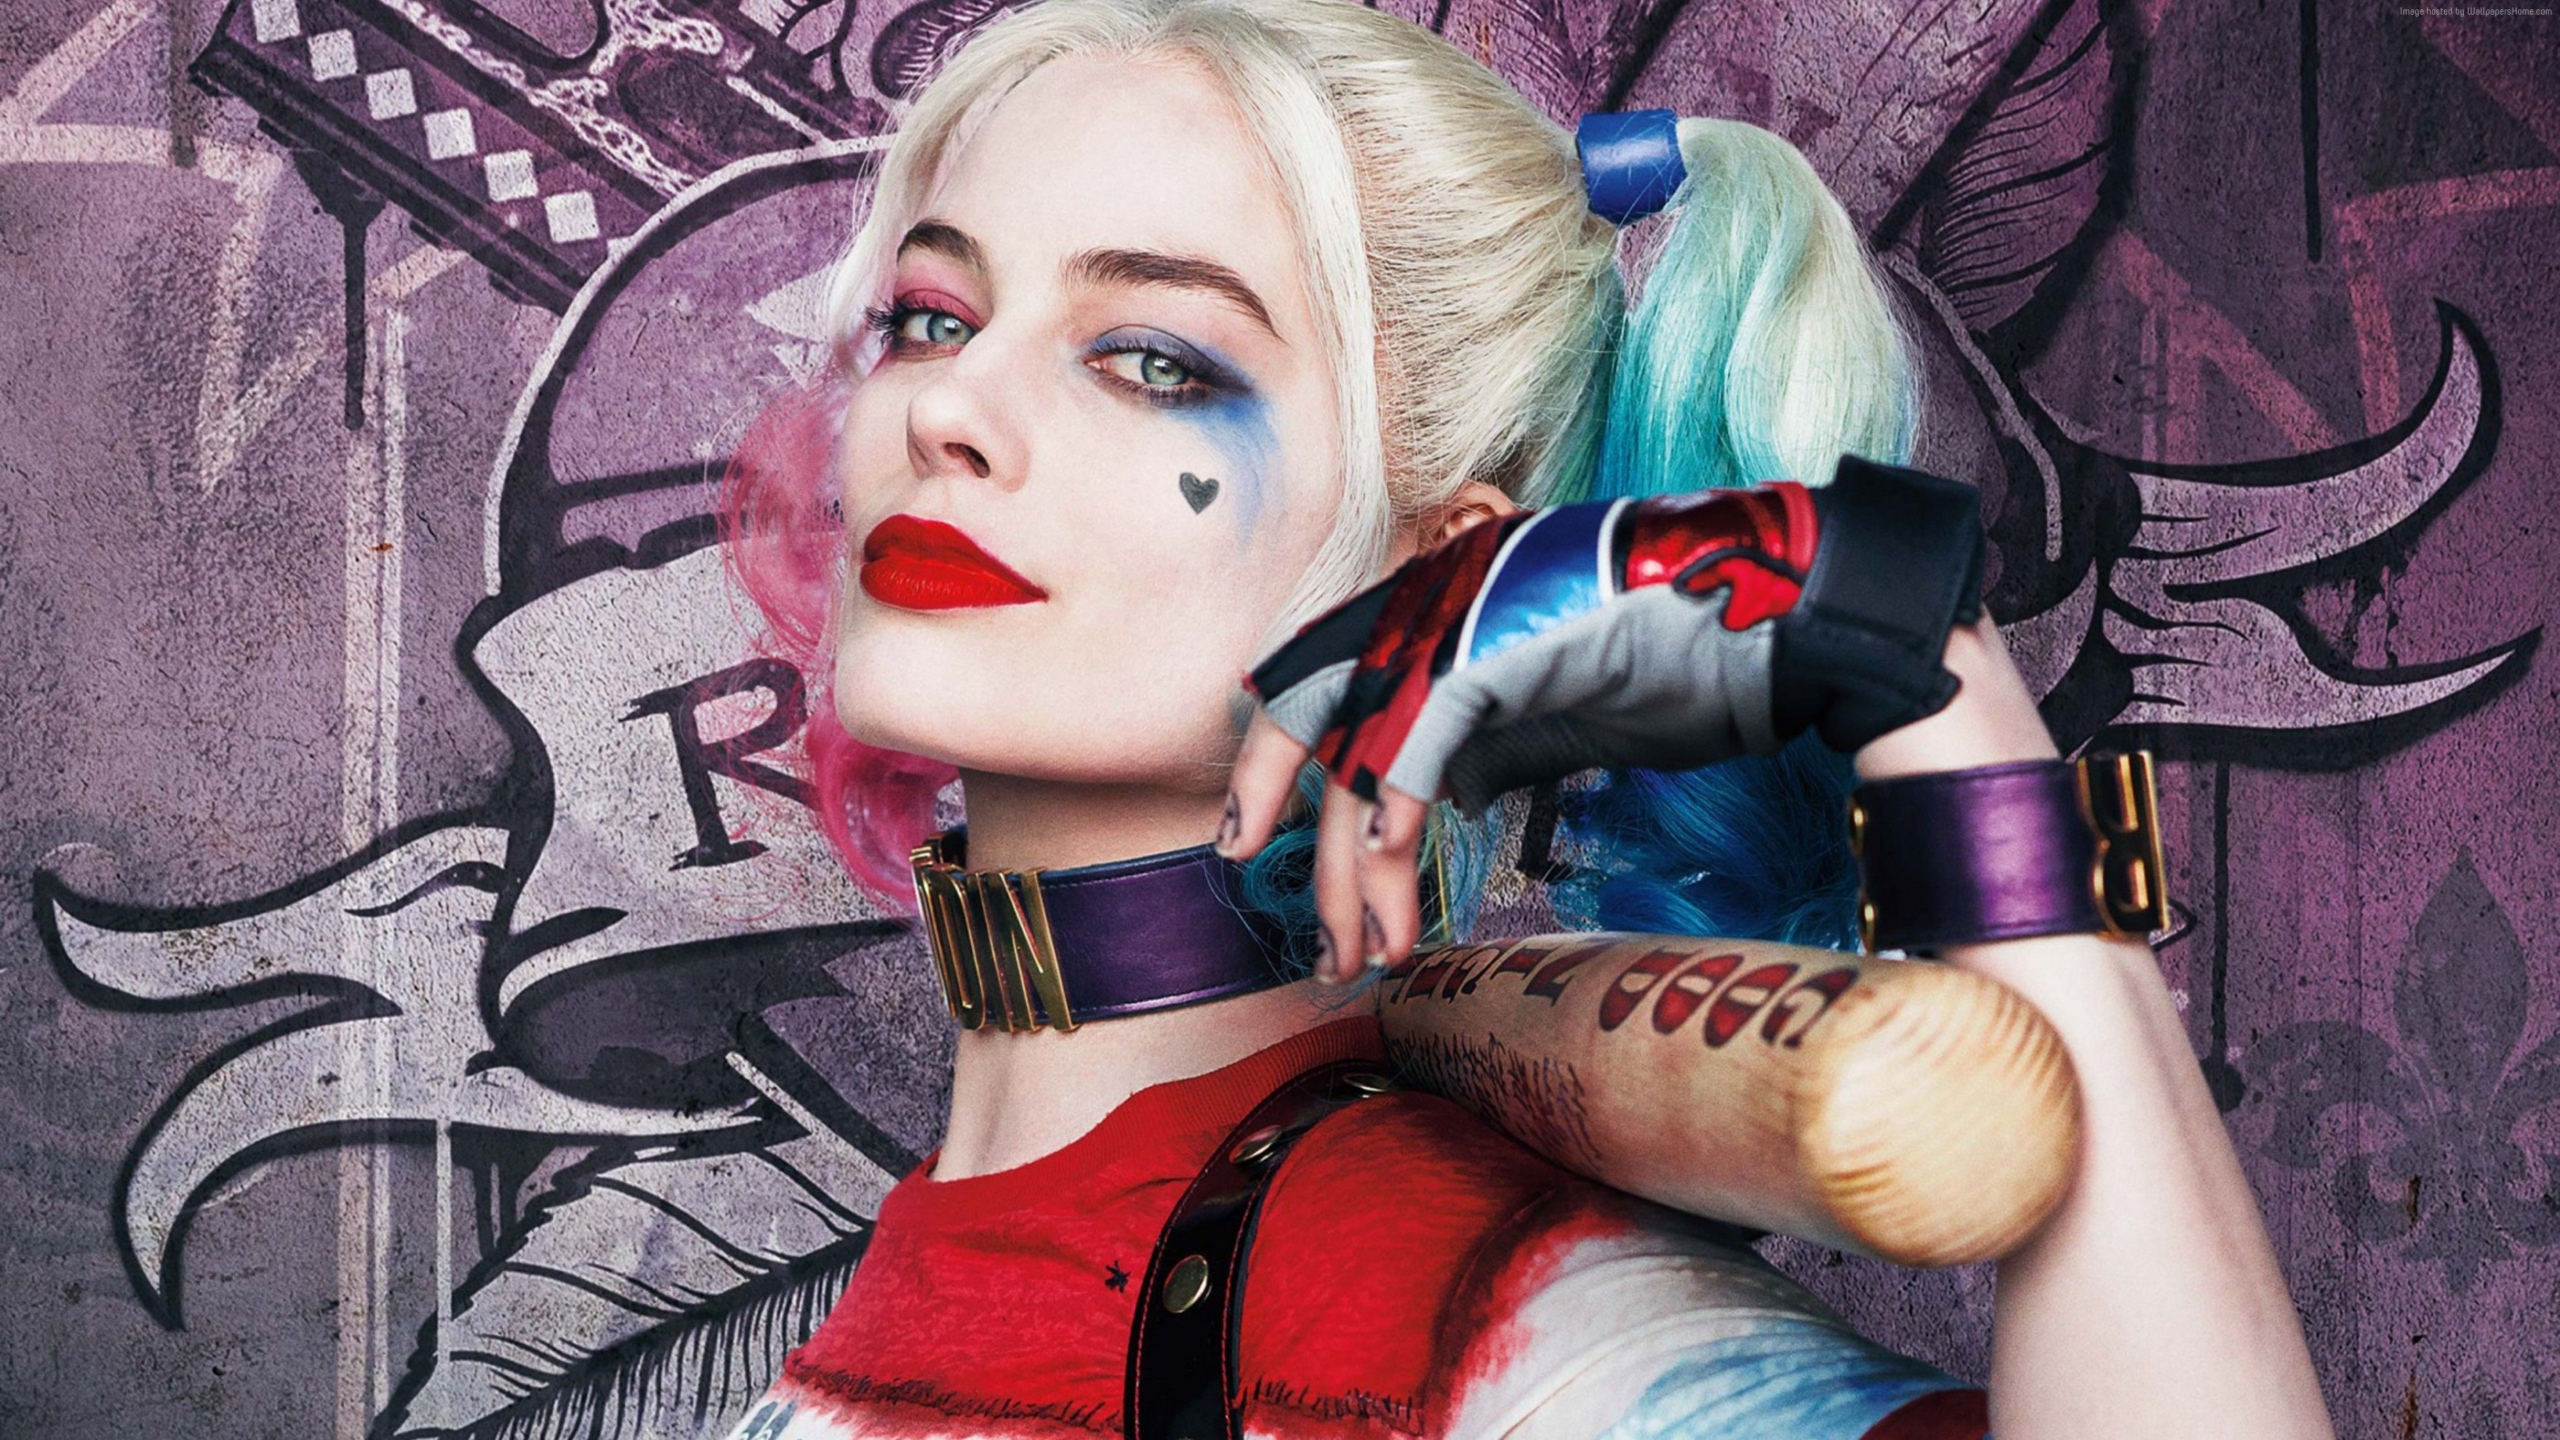 A Great Harley Quinn Wallpaper For Your Computer